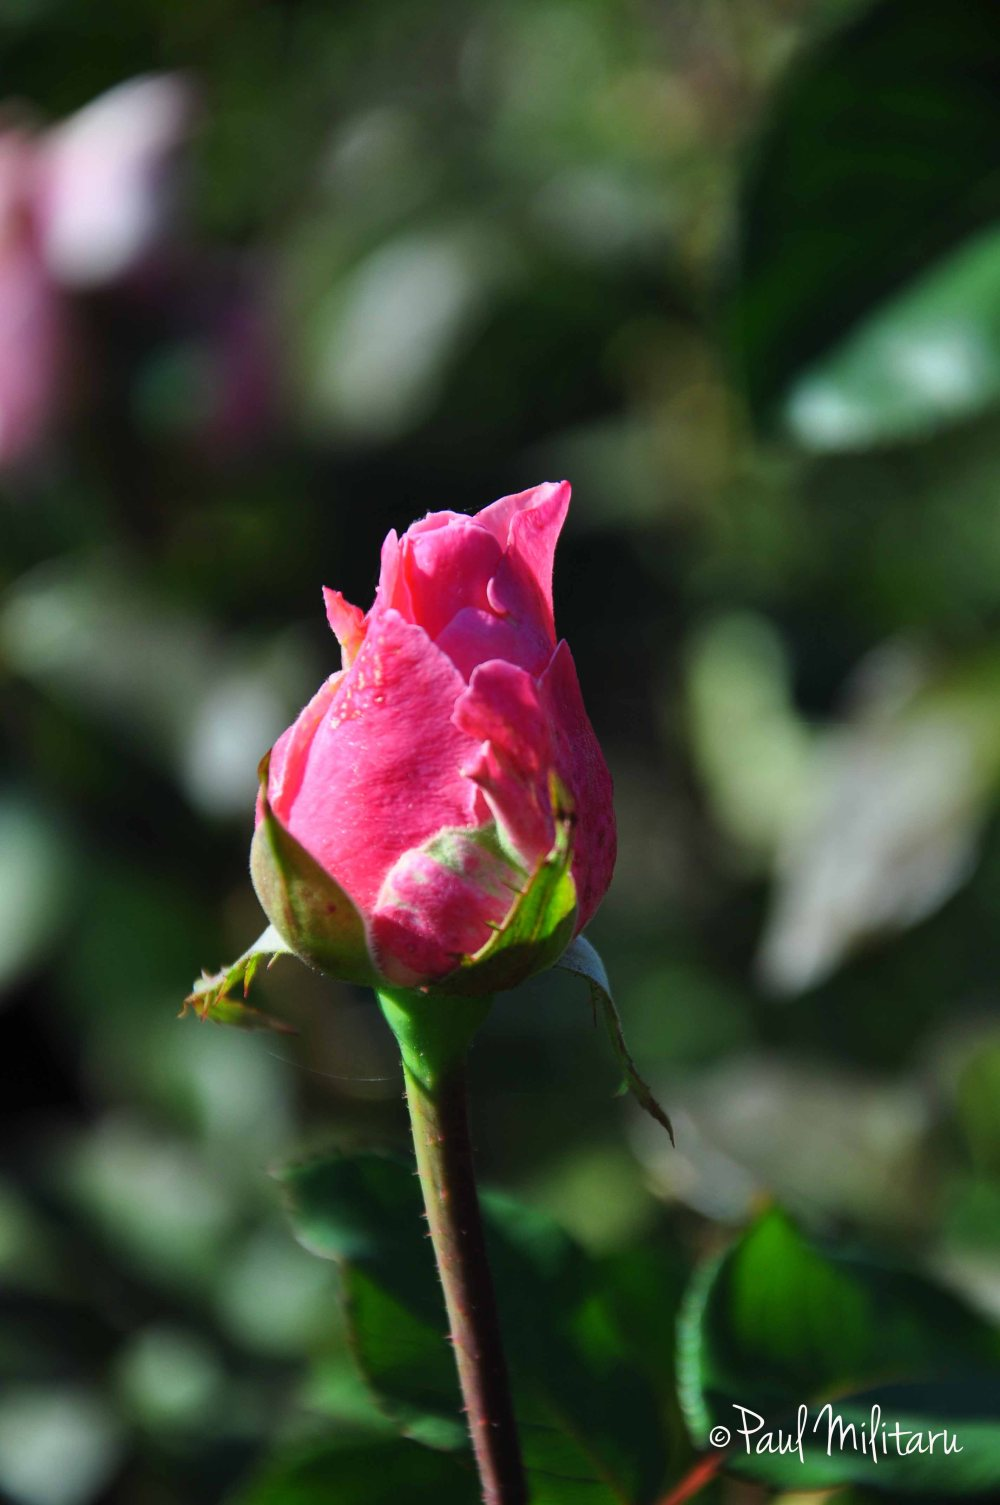 a beautiful rose for March 1st - first day of Spring